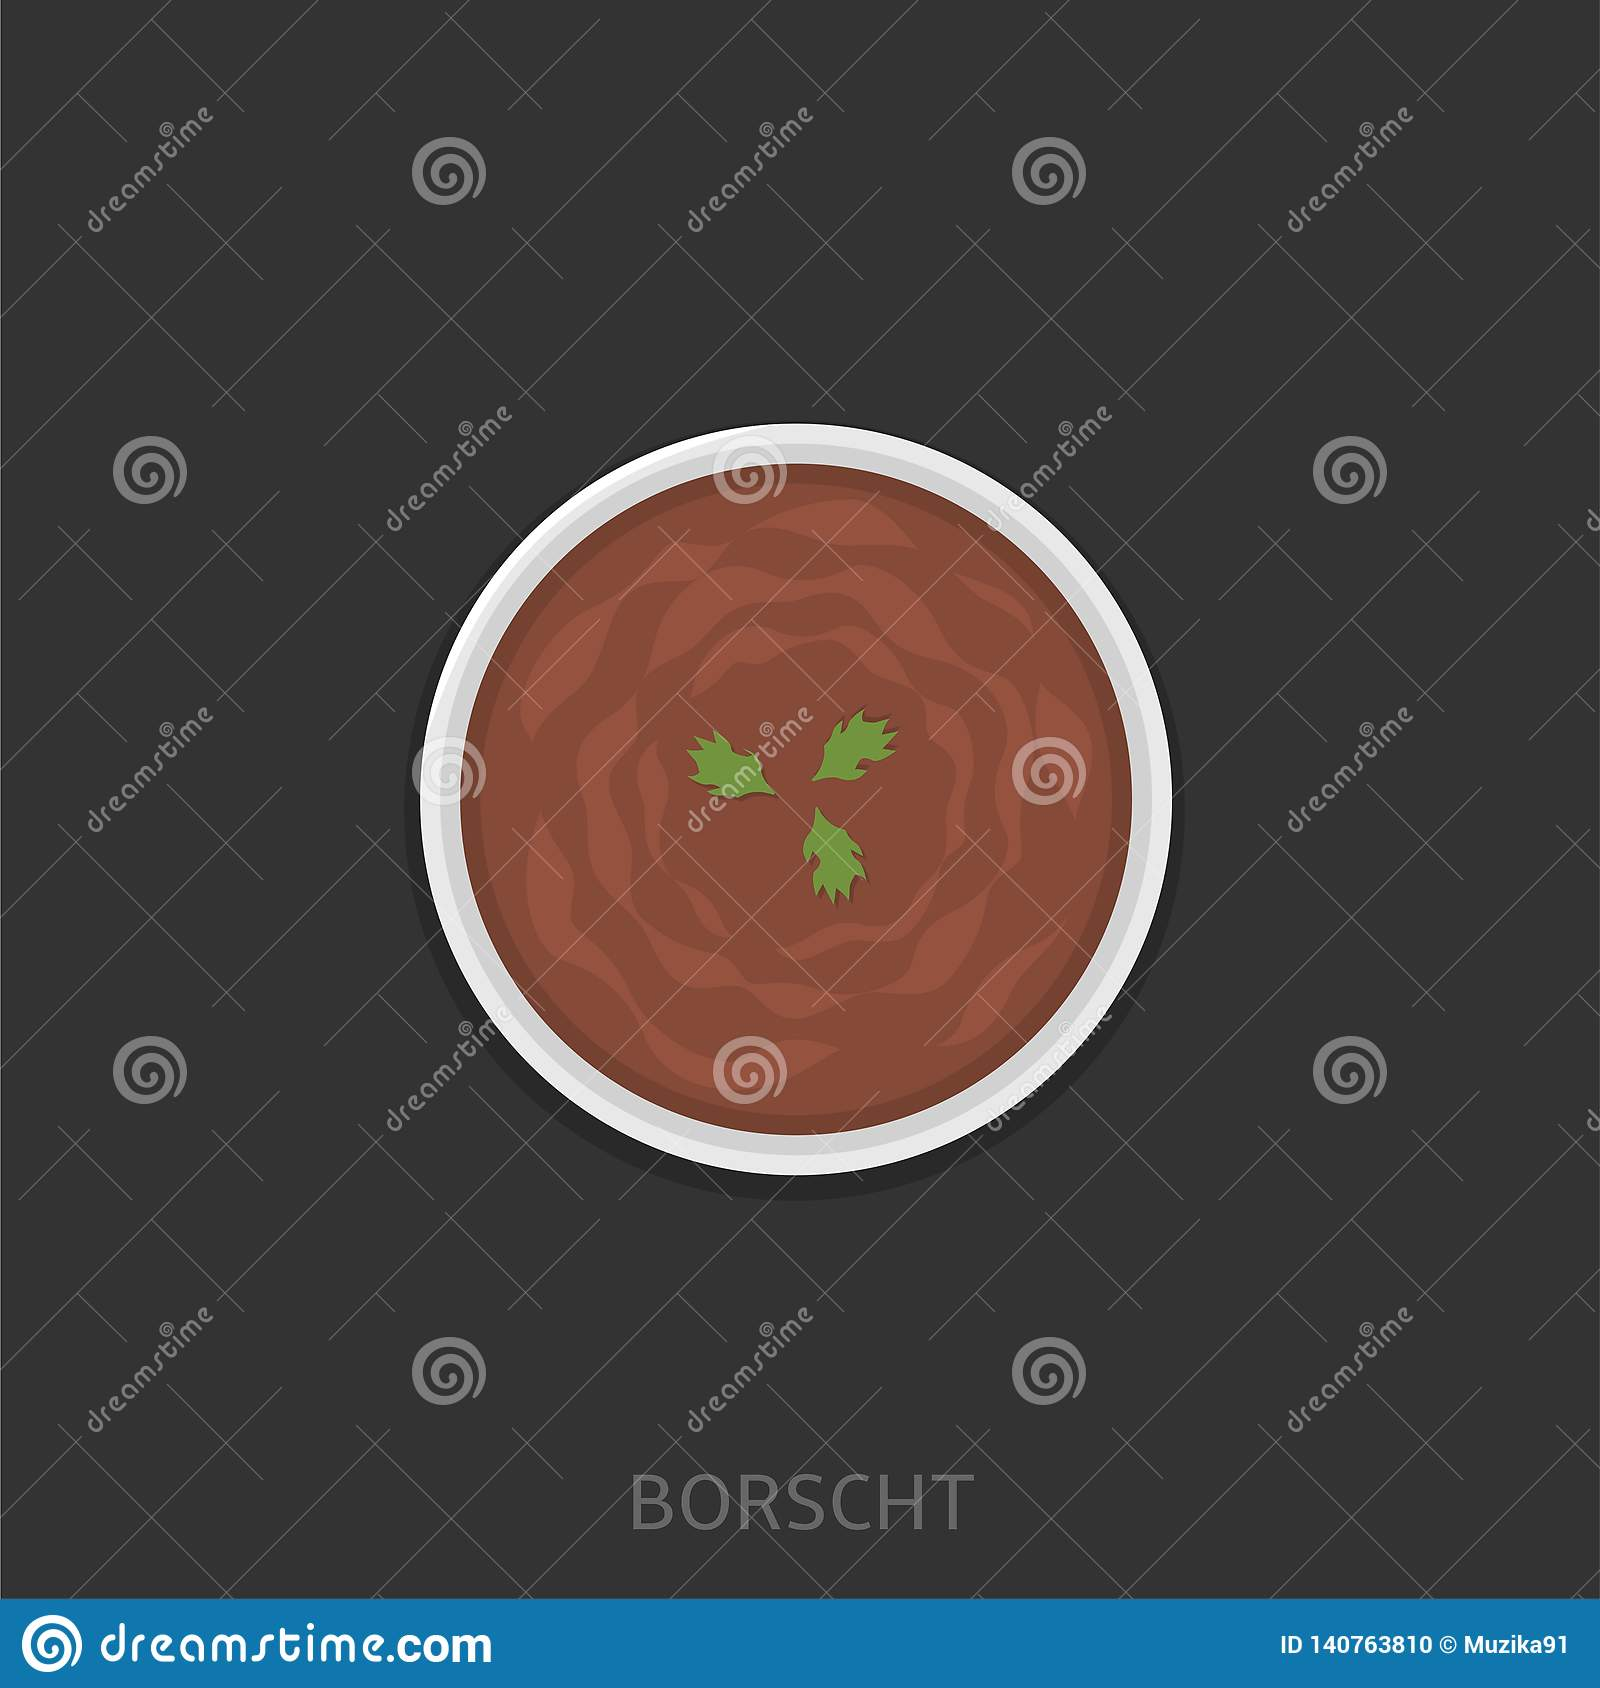 Illustration de vecteur de Borscht